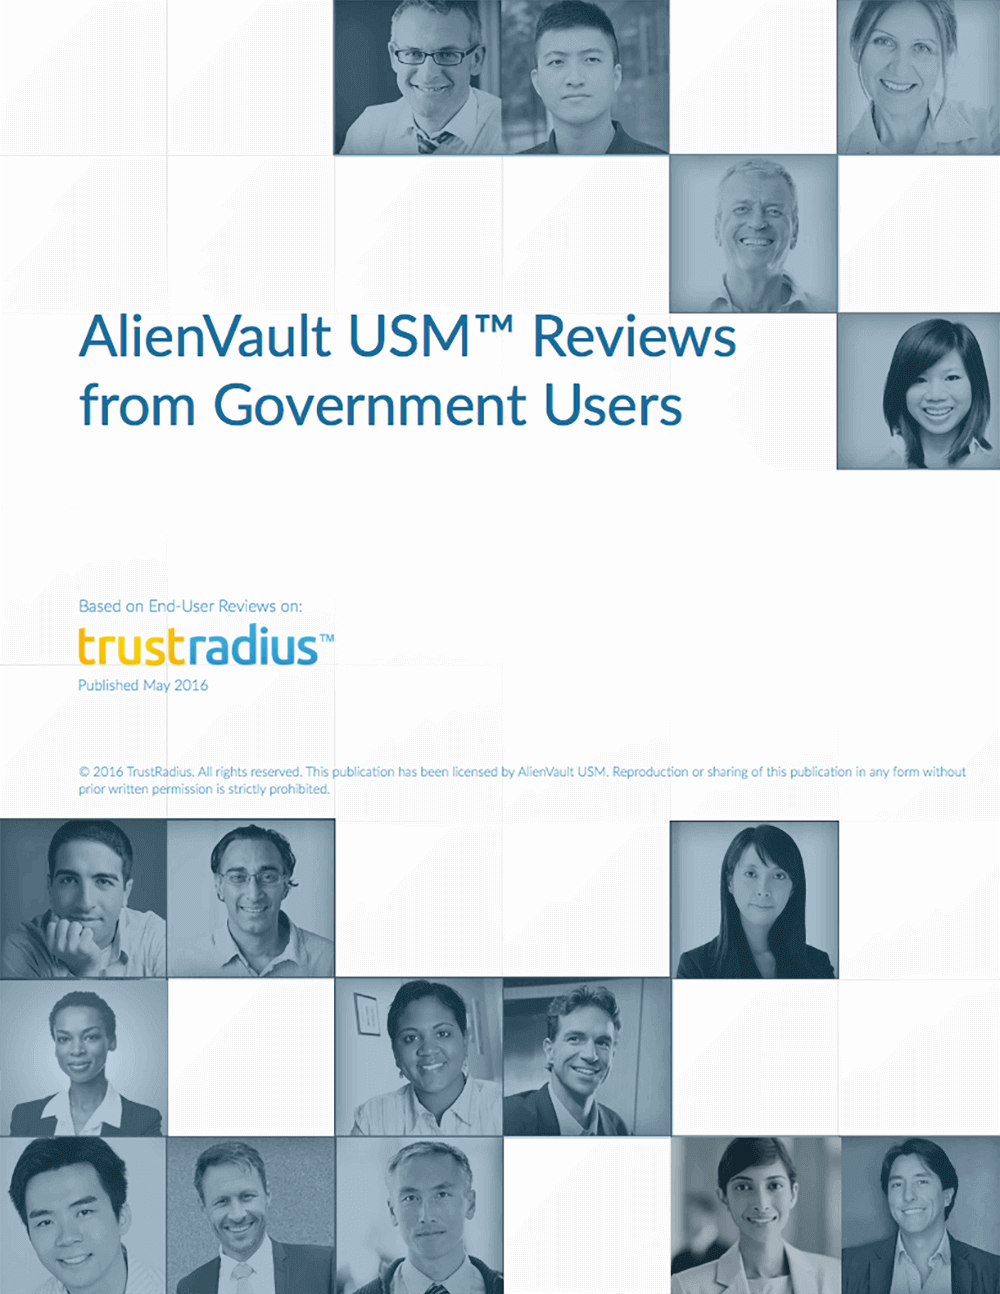 AlienVault USM Reviews from Government Users